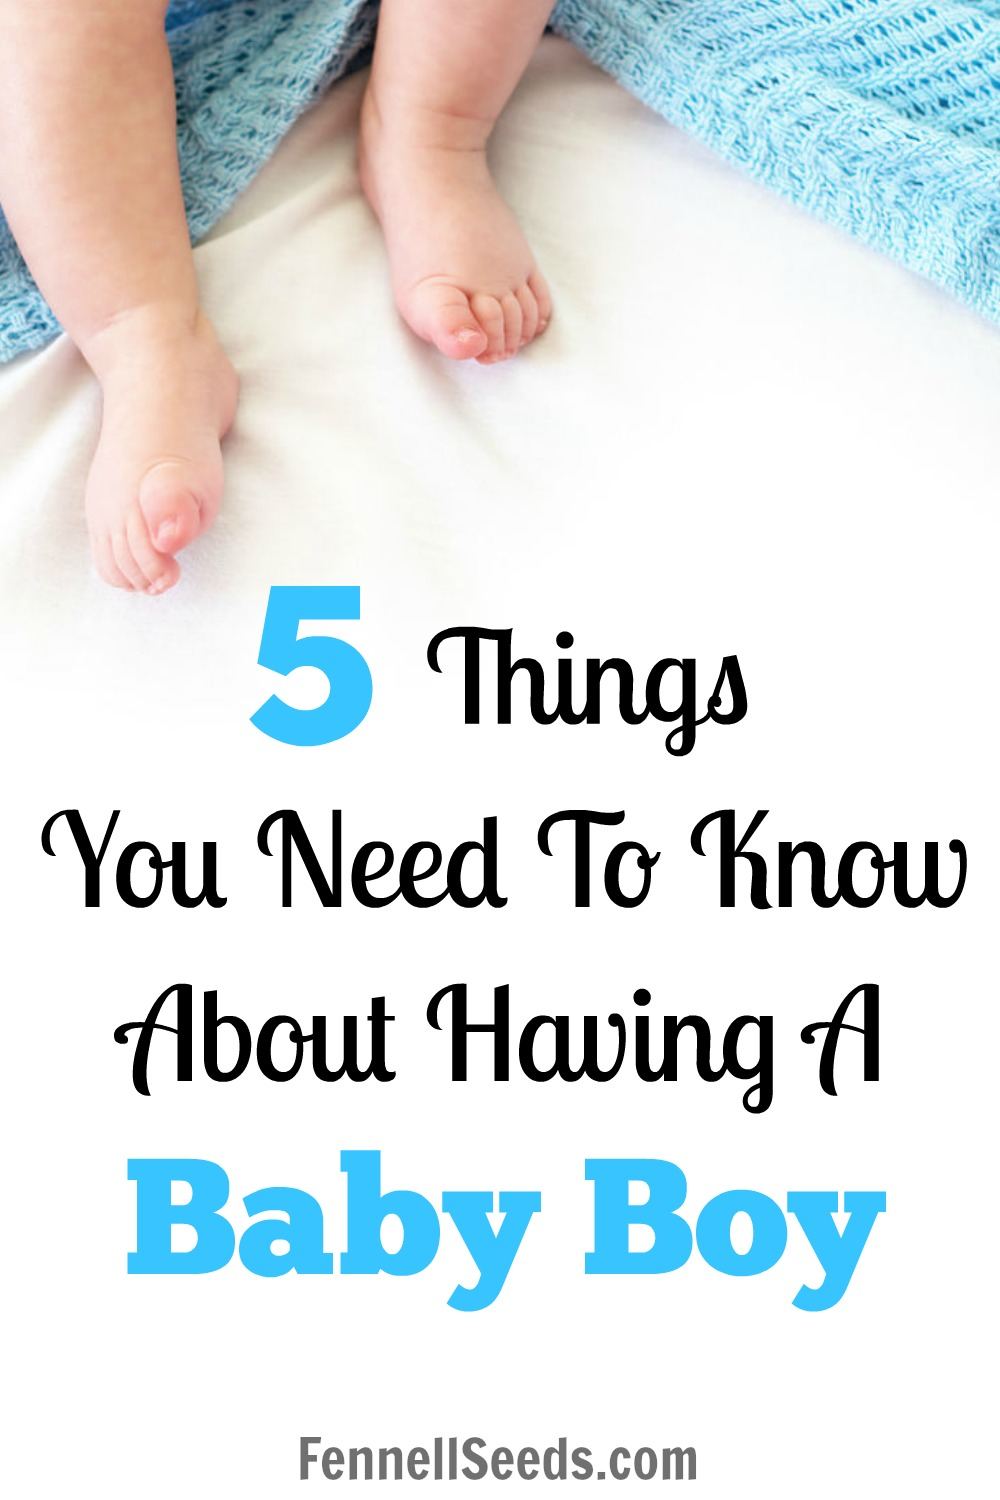 5 Things You Need To Know About Having A Baby Boy